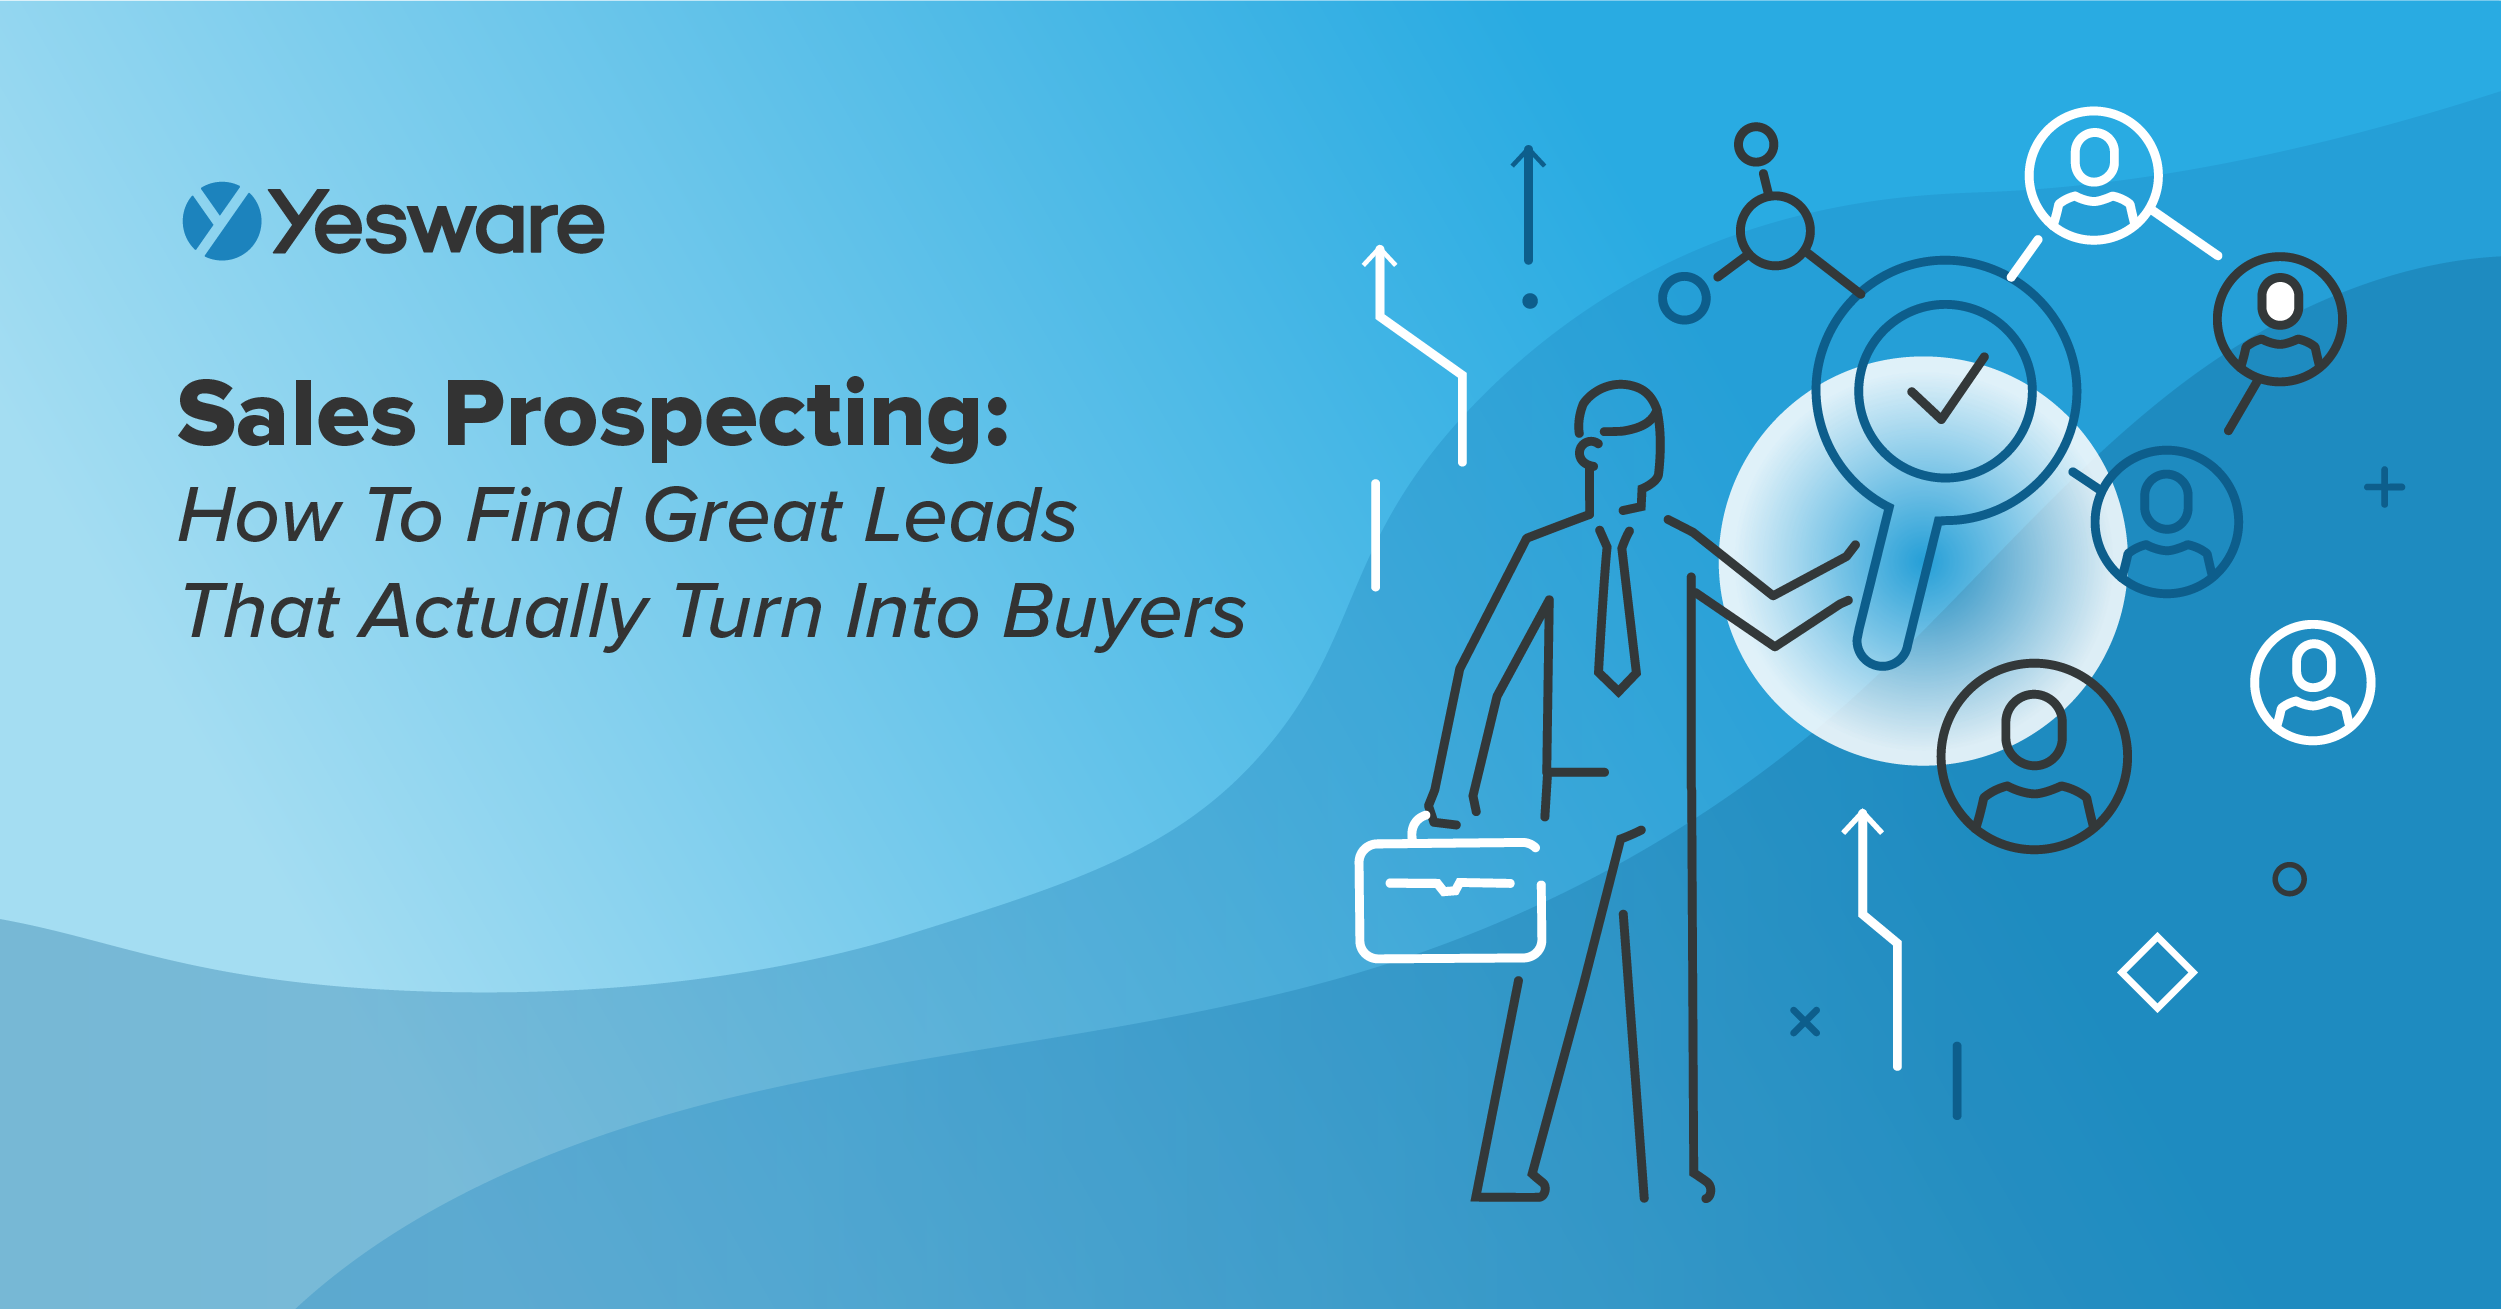 Sales Prospecting: How To Find Great Leads That Actually Turn Into Buyers